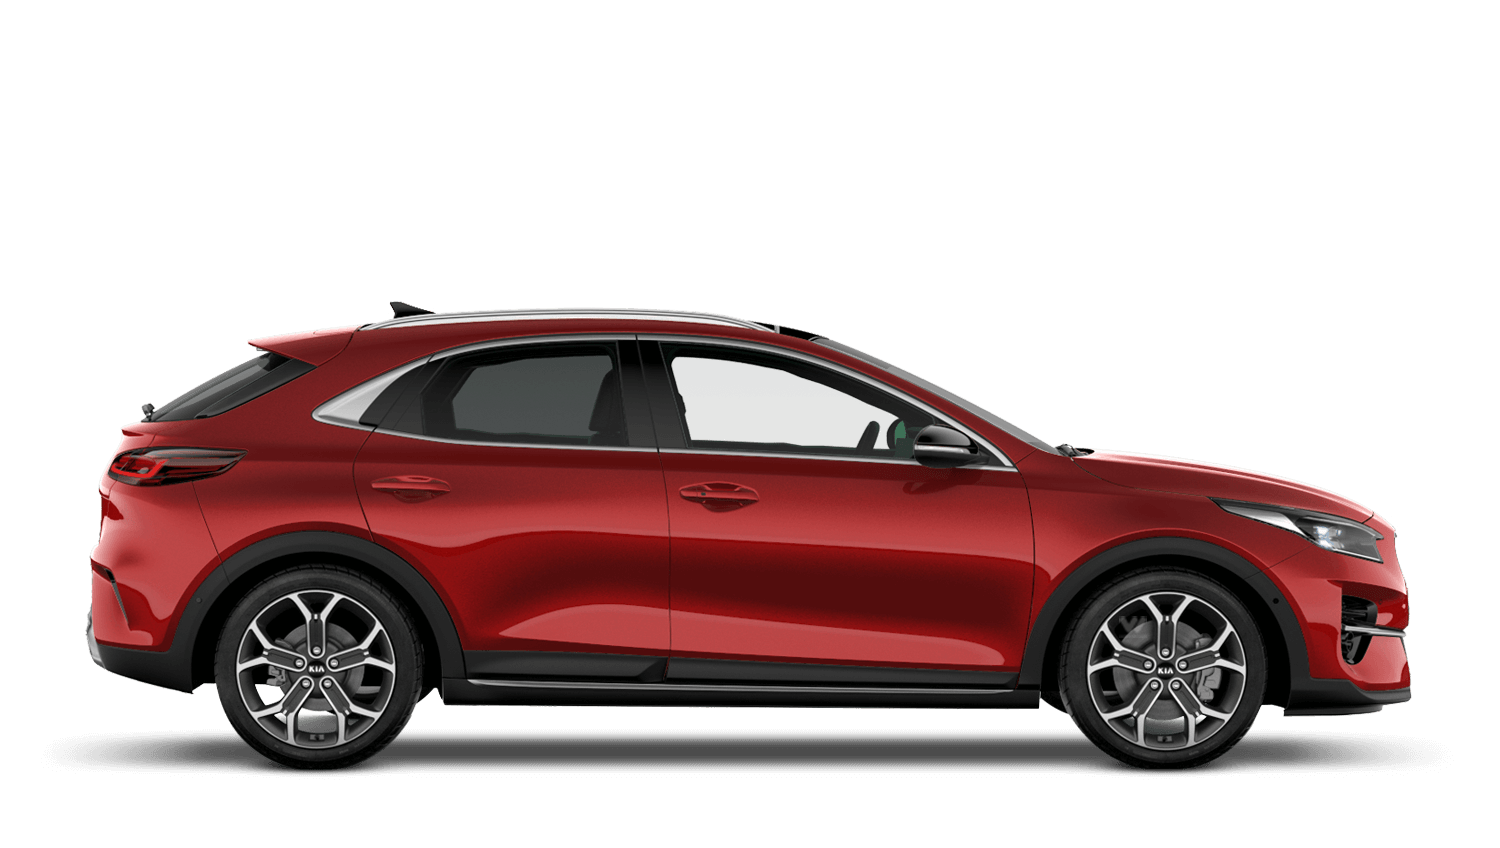 Infra Red Kia XCeed